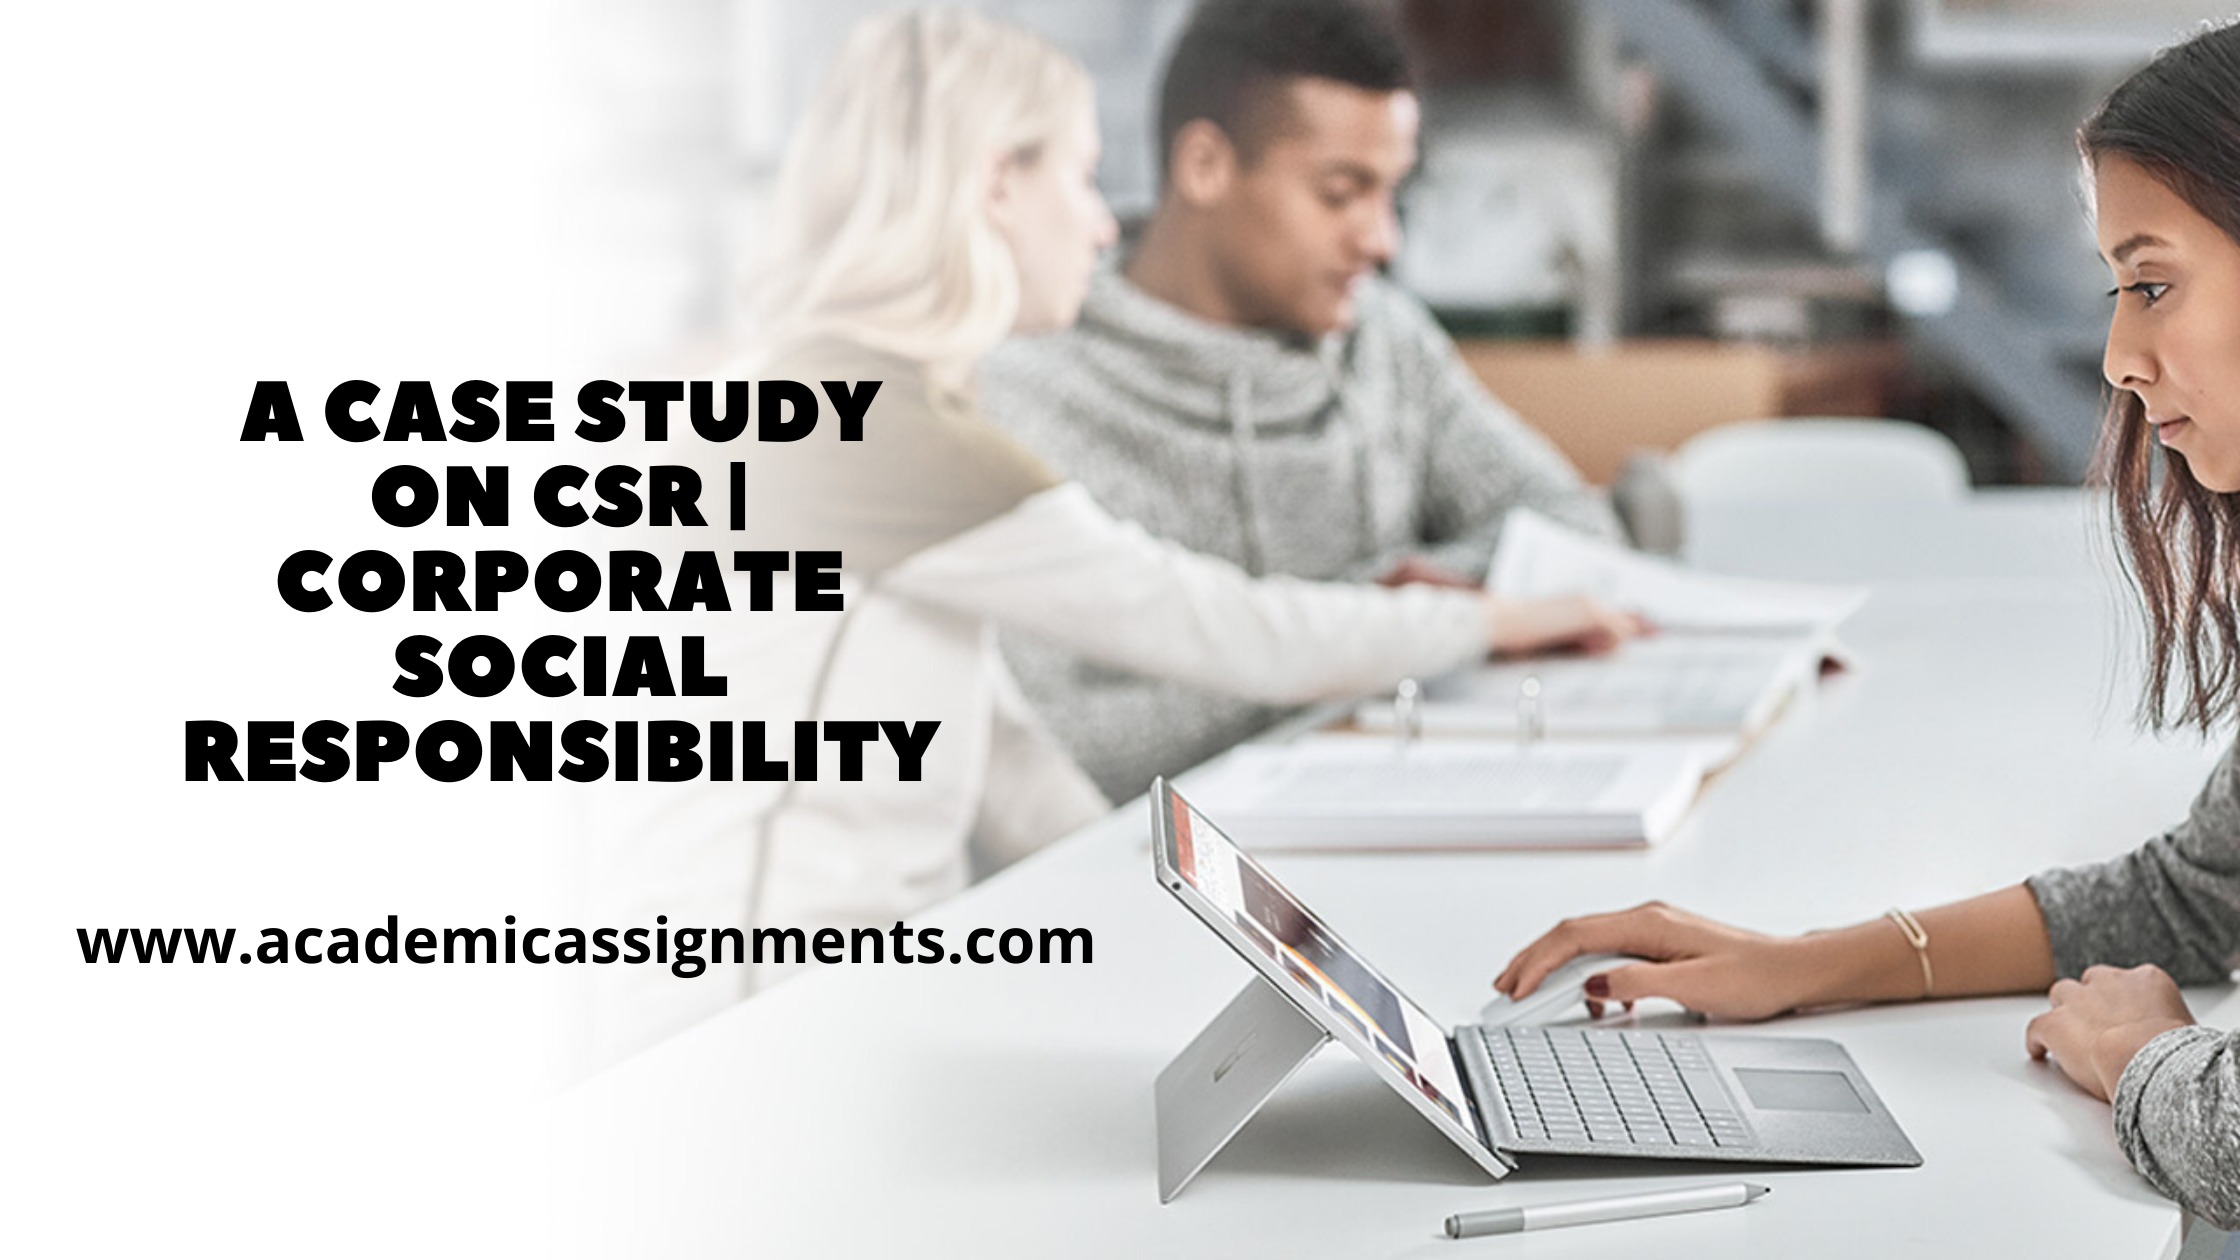 A case study on CSR | Corporate Social Responsibility